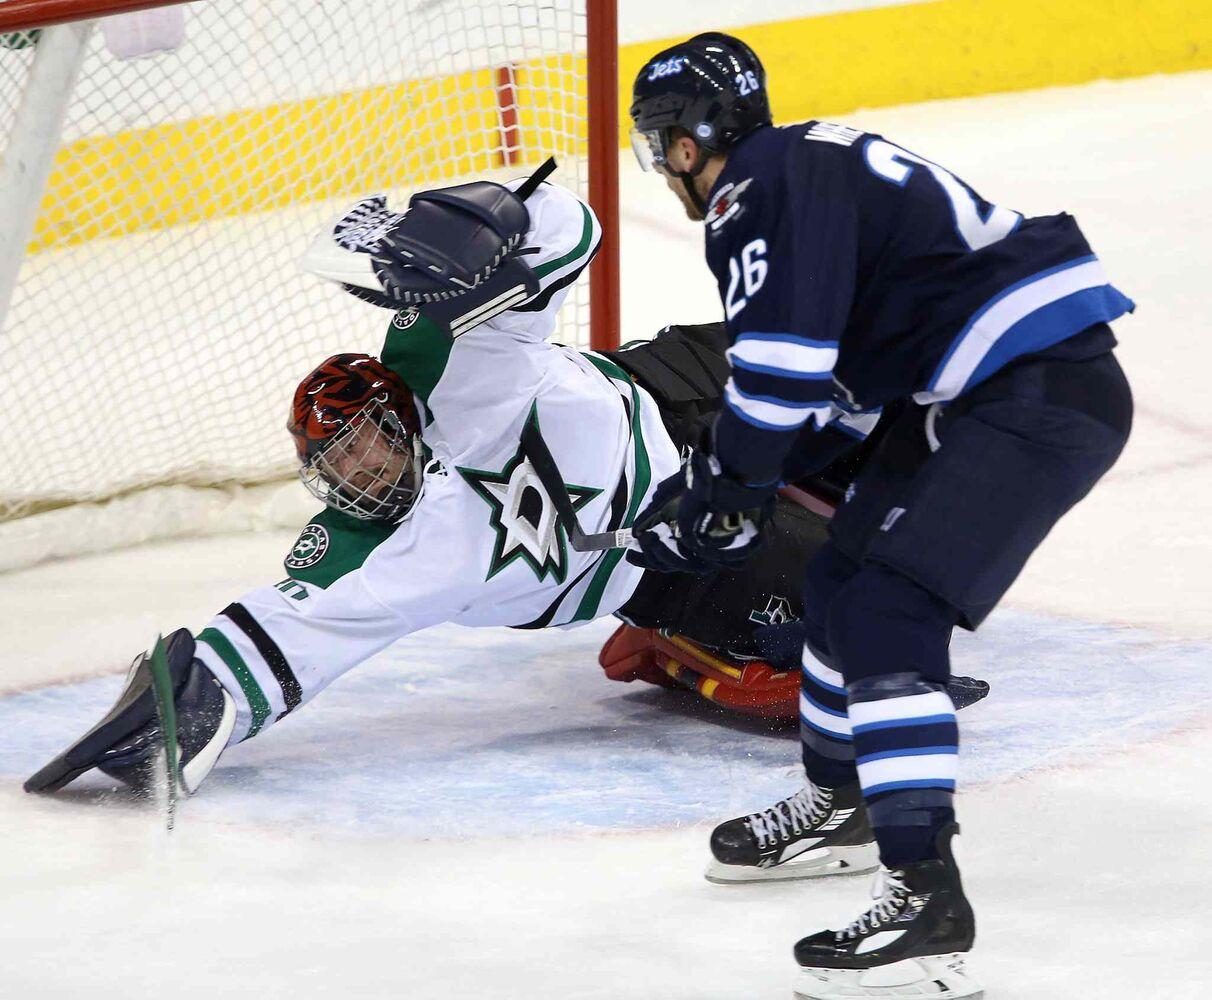 Stars goaltender Tim Thomas makes a sprawling save against Jets winger Blake Wheeler during the first period. (TREVOR HAGAN / THE CANADIAN PRESS)